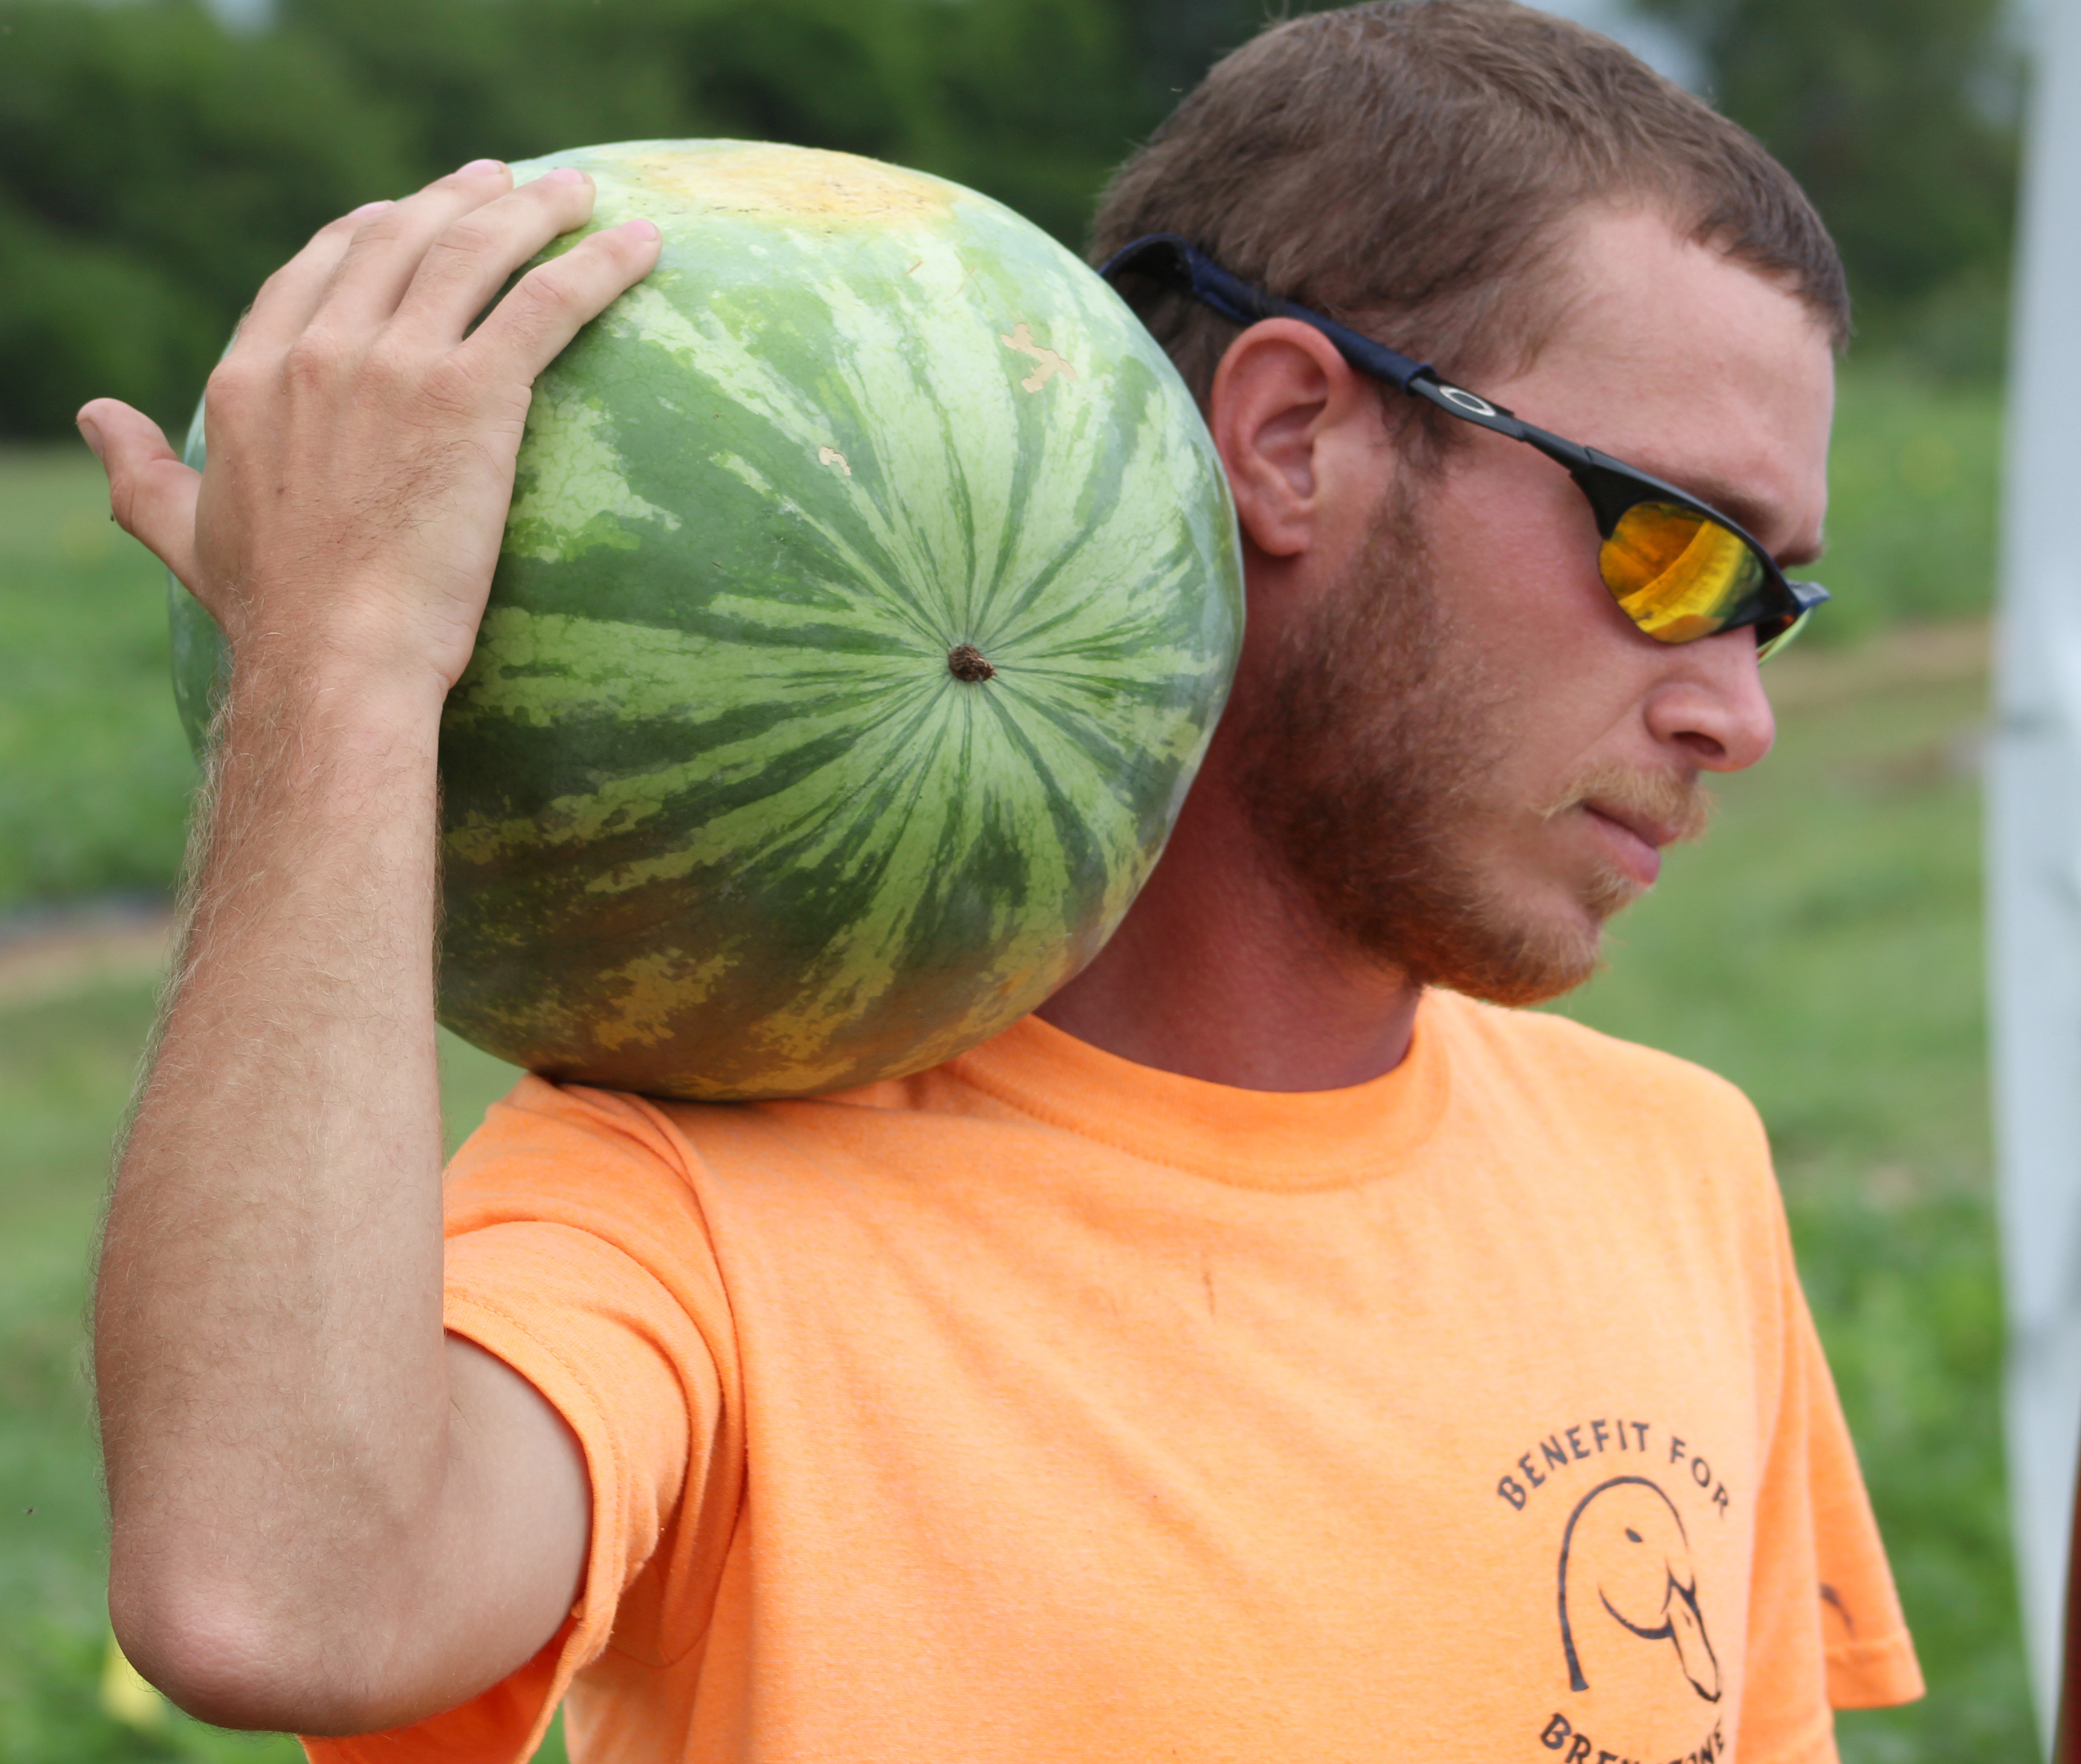 Student worker Kalen Fleming carries a watermelon on the UGA Tifton campus.